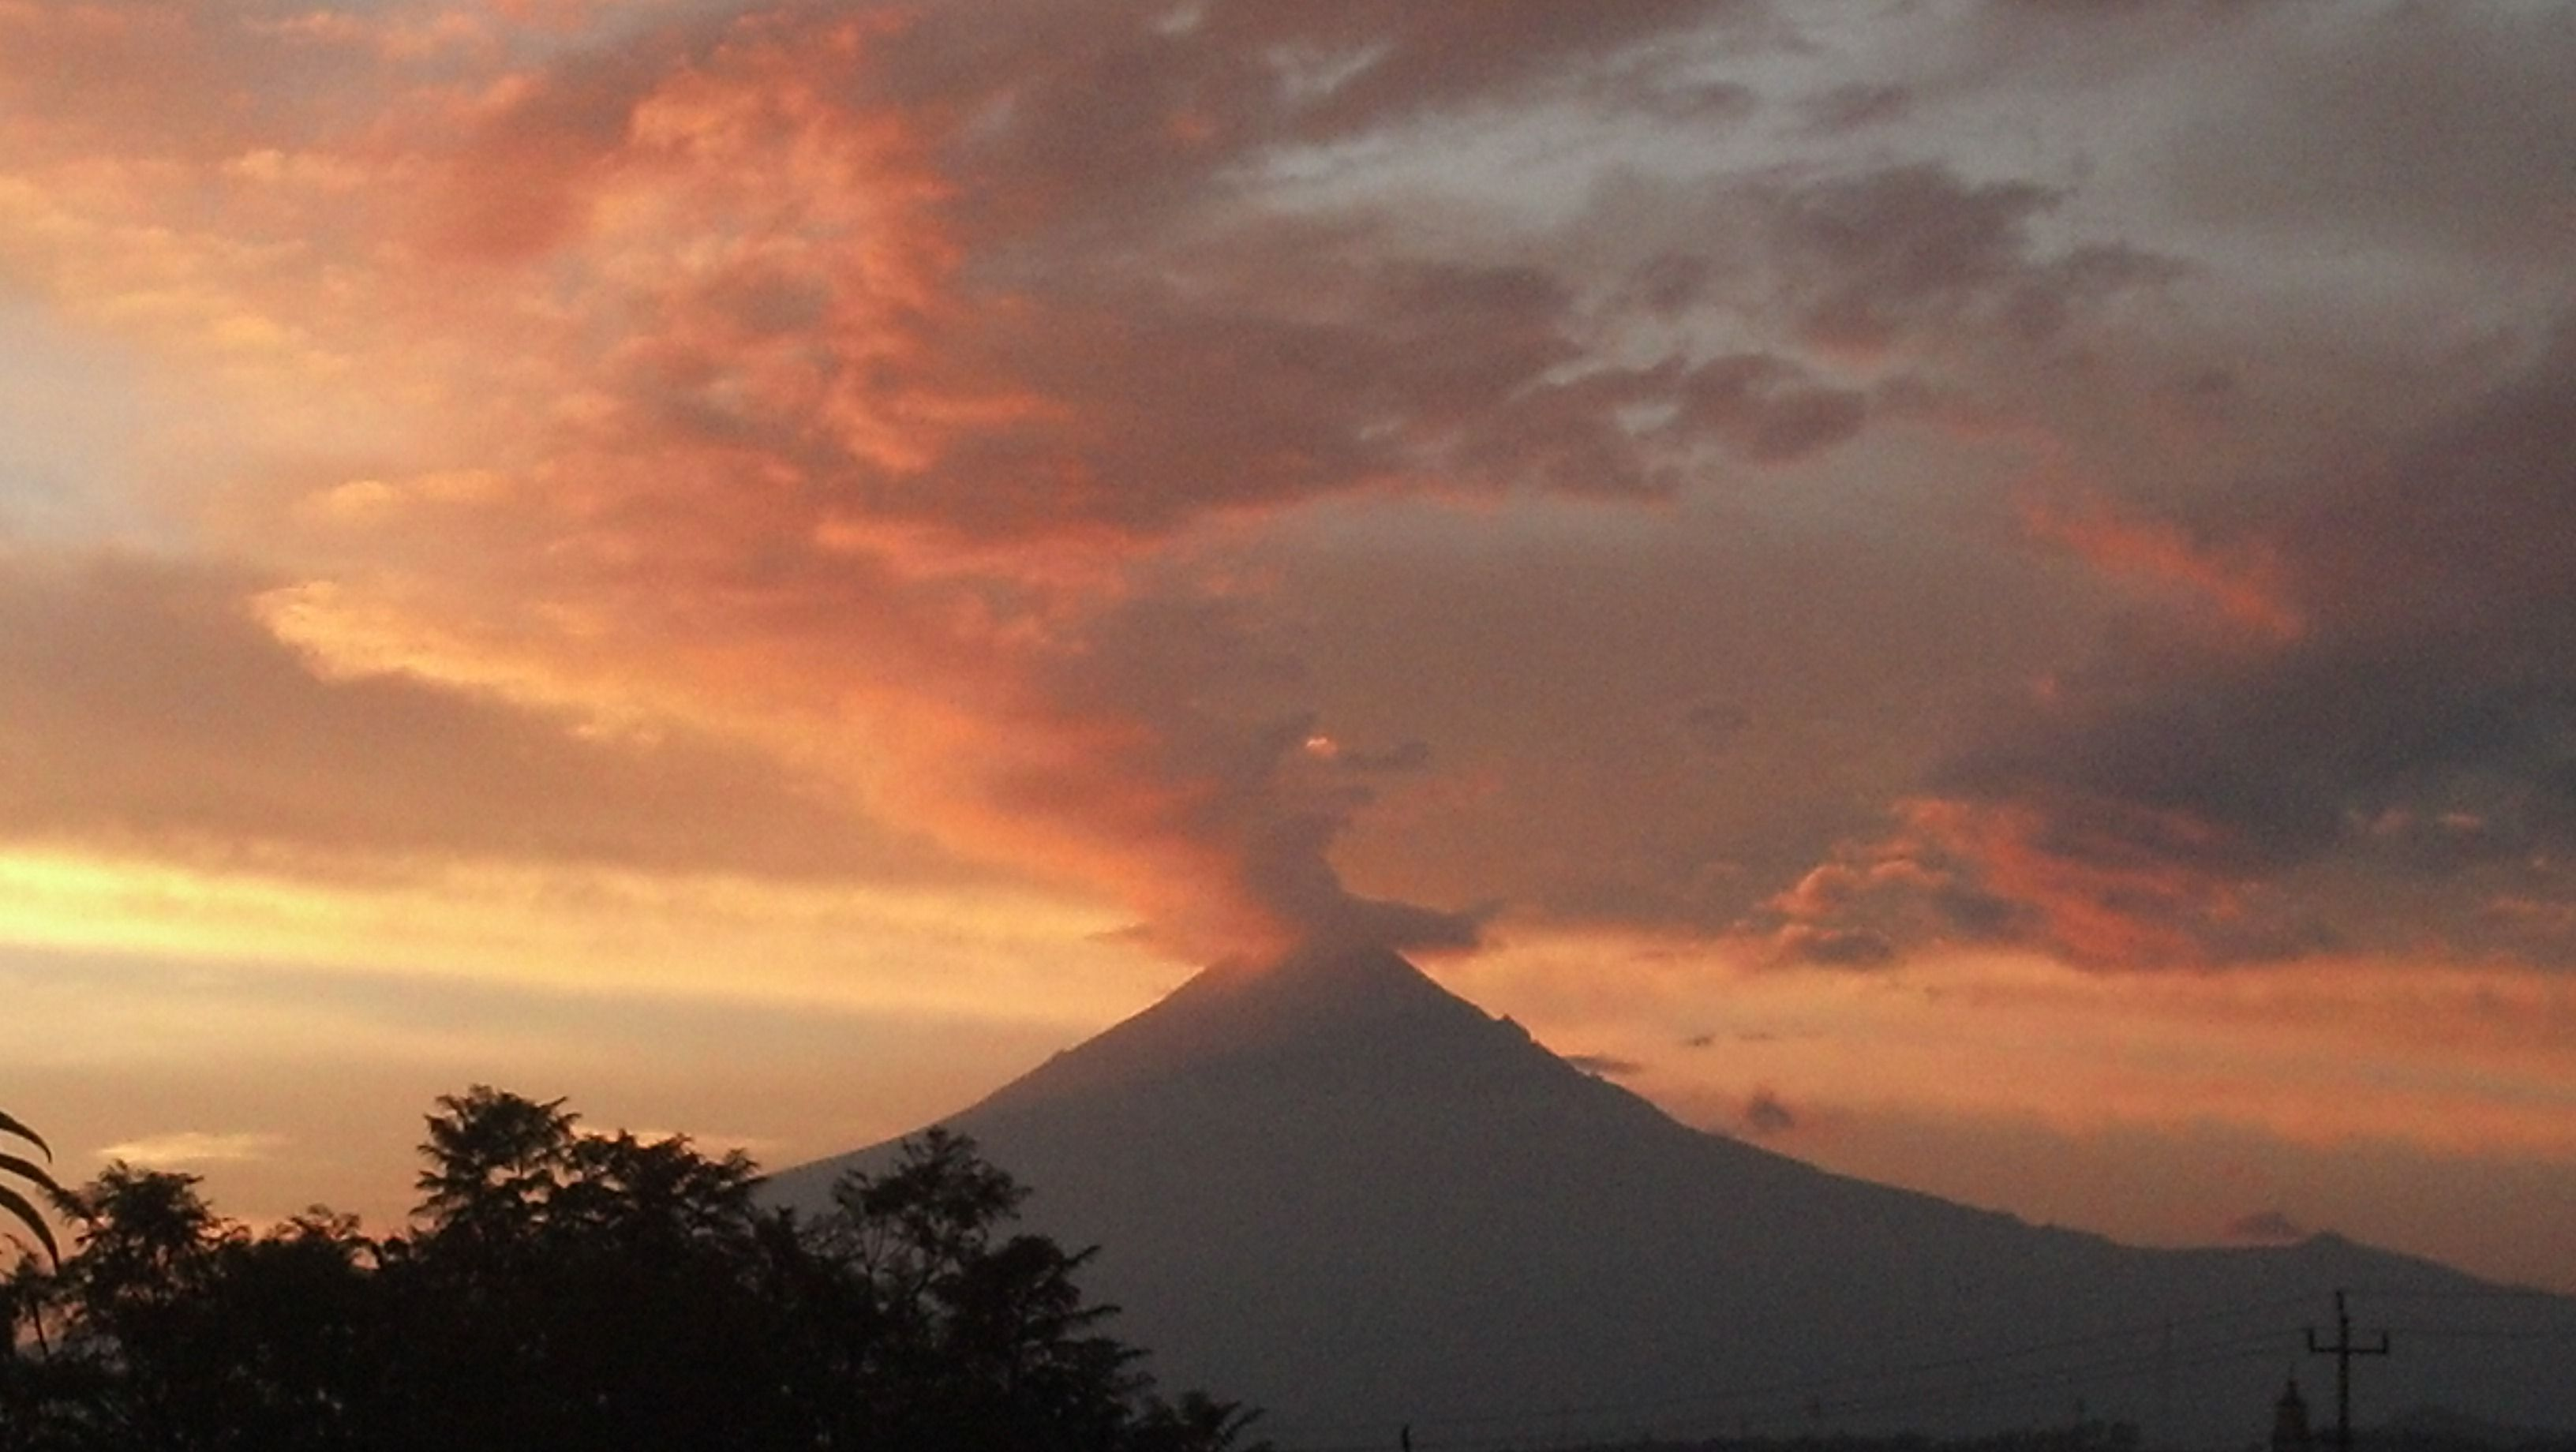 Popocatepetl An Active Volcano Spewing Forth Ash And Vapor A Few - Active volcanoes in mexico